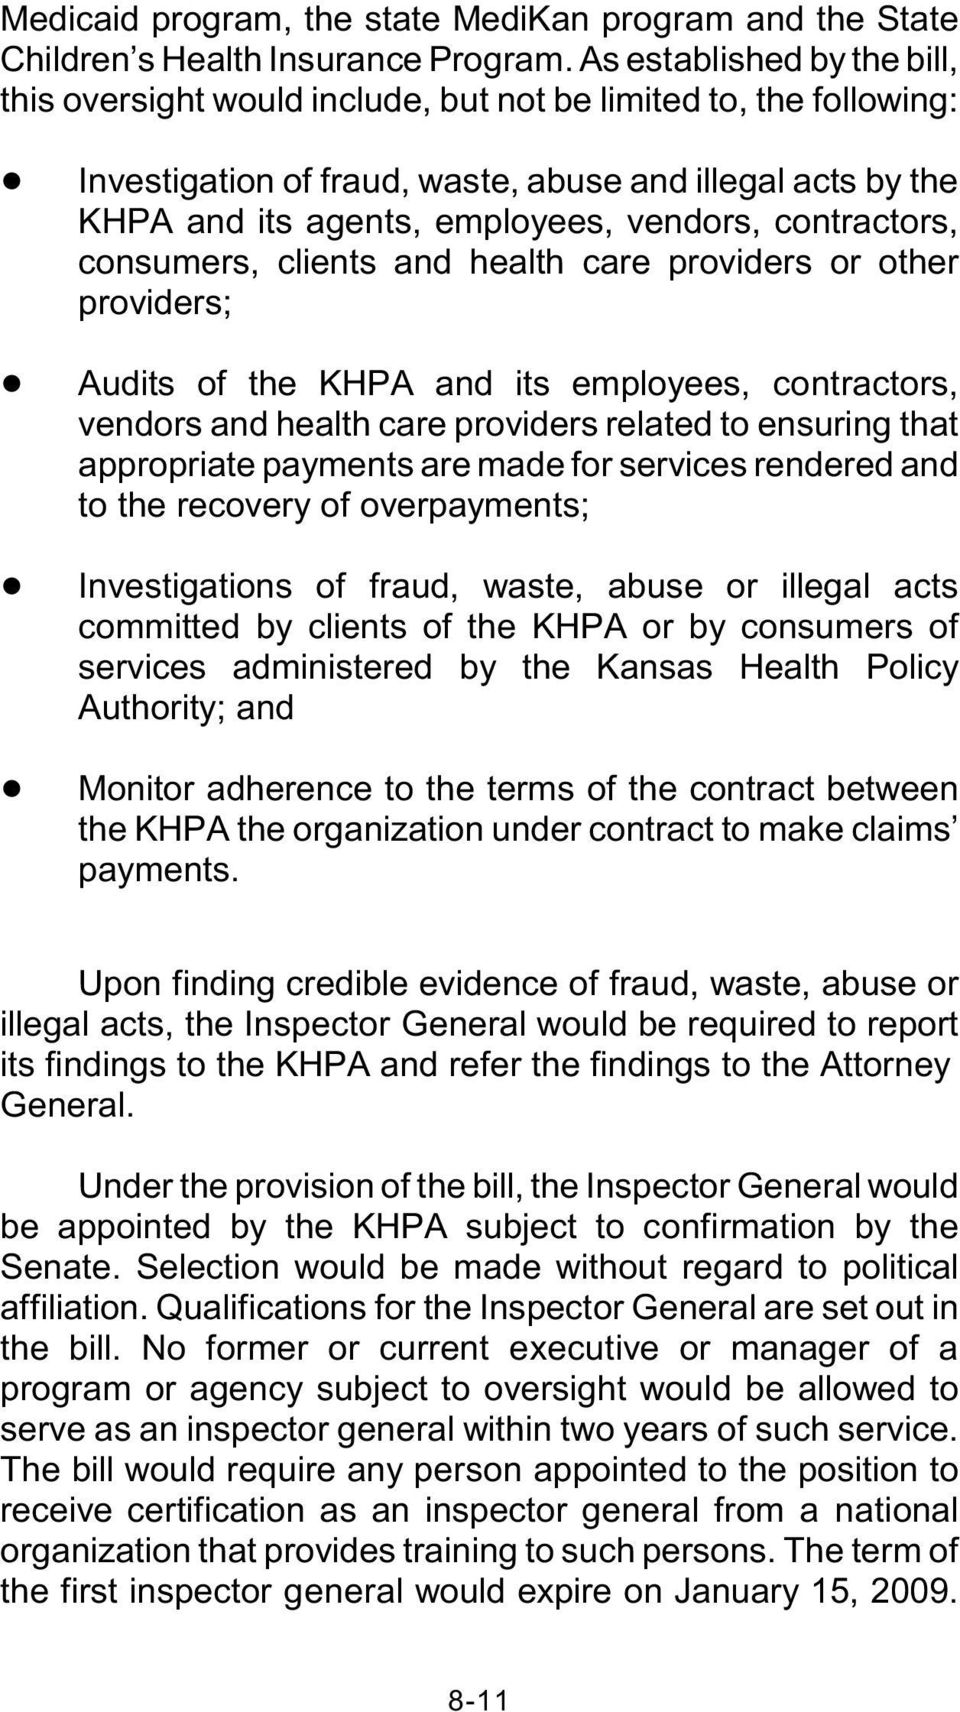 Audits of the KHPA and its employees, contractors, vendors and health care providers related to ensuring that appropriate payments are made for services rendered and to the recovery of overpayments;!